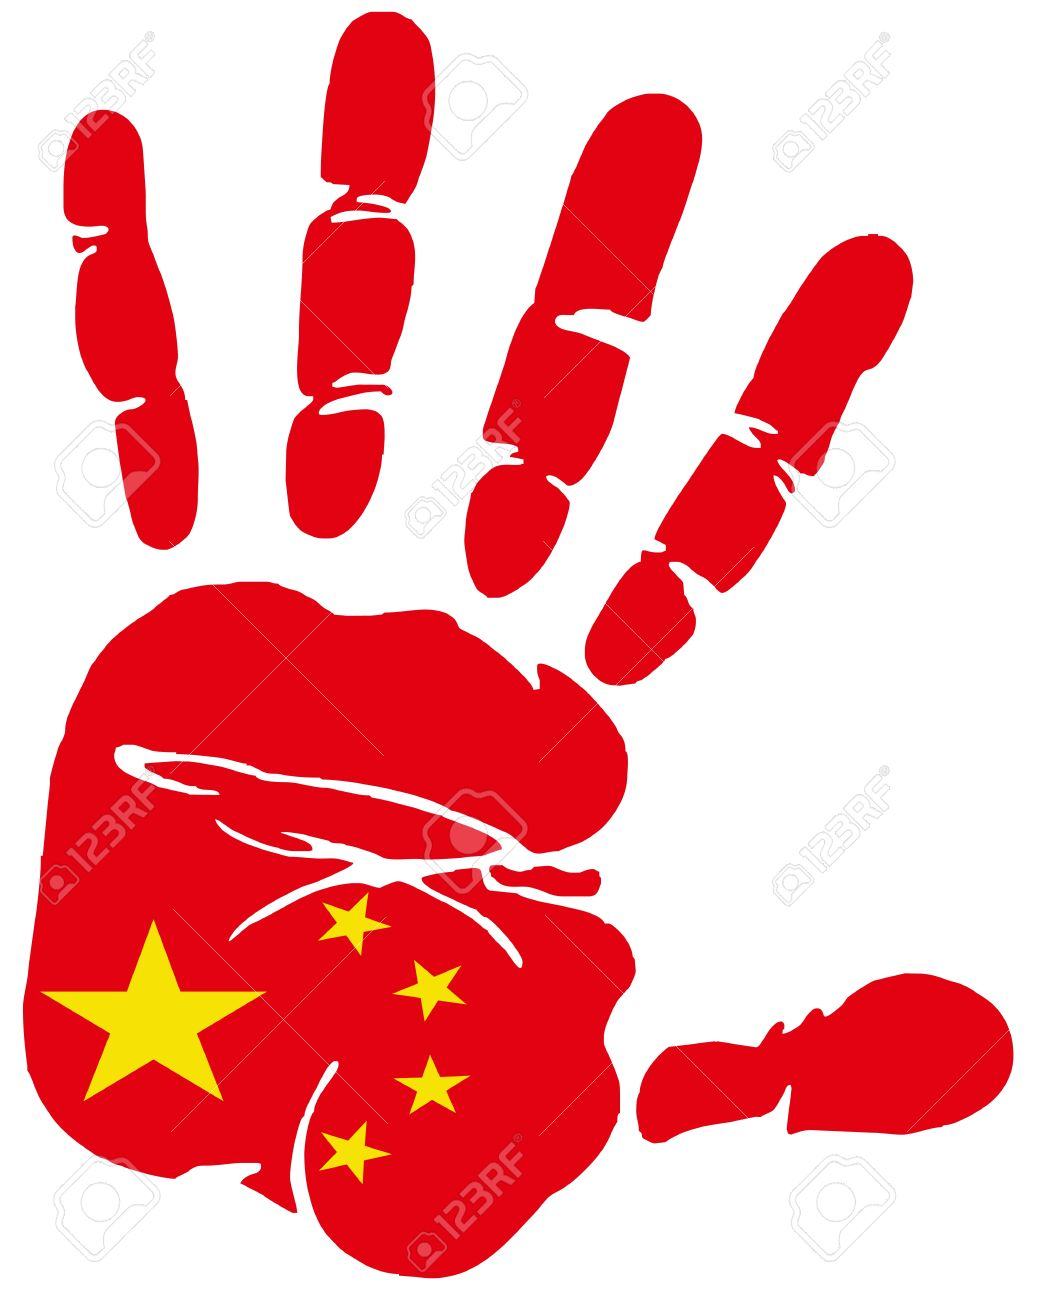 Hand Print Impression Of Flag Of Peoples Republic Of China Royalty.